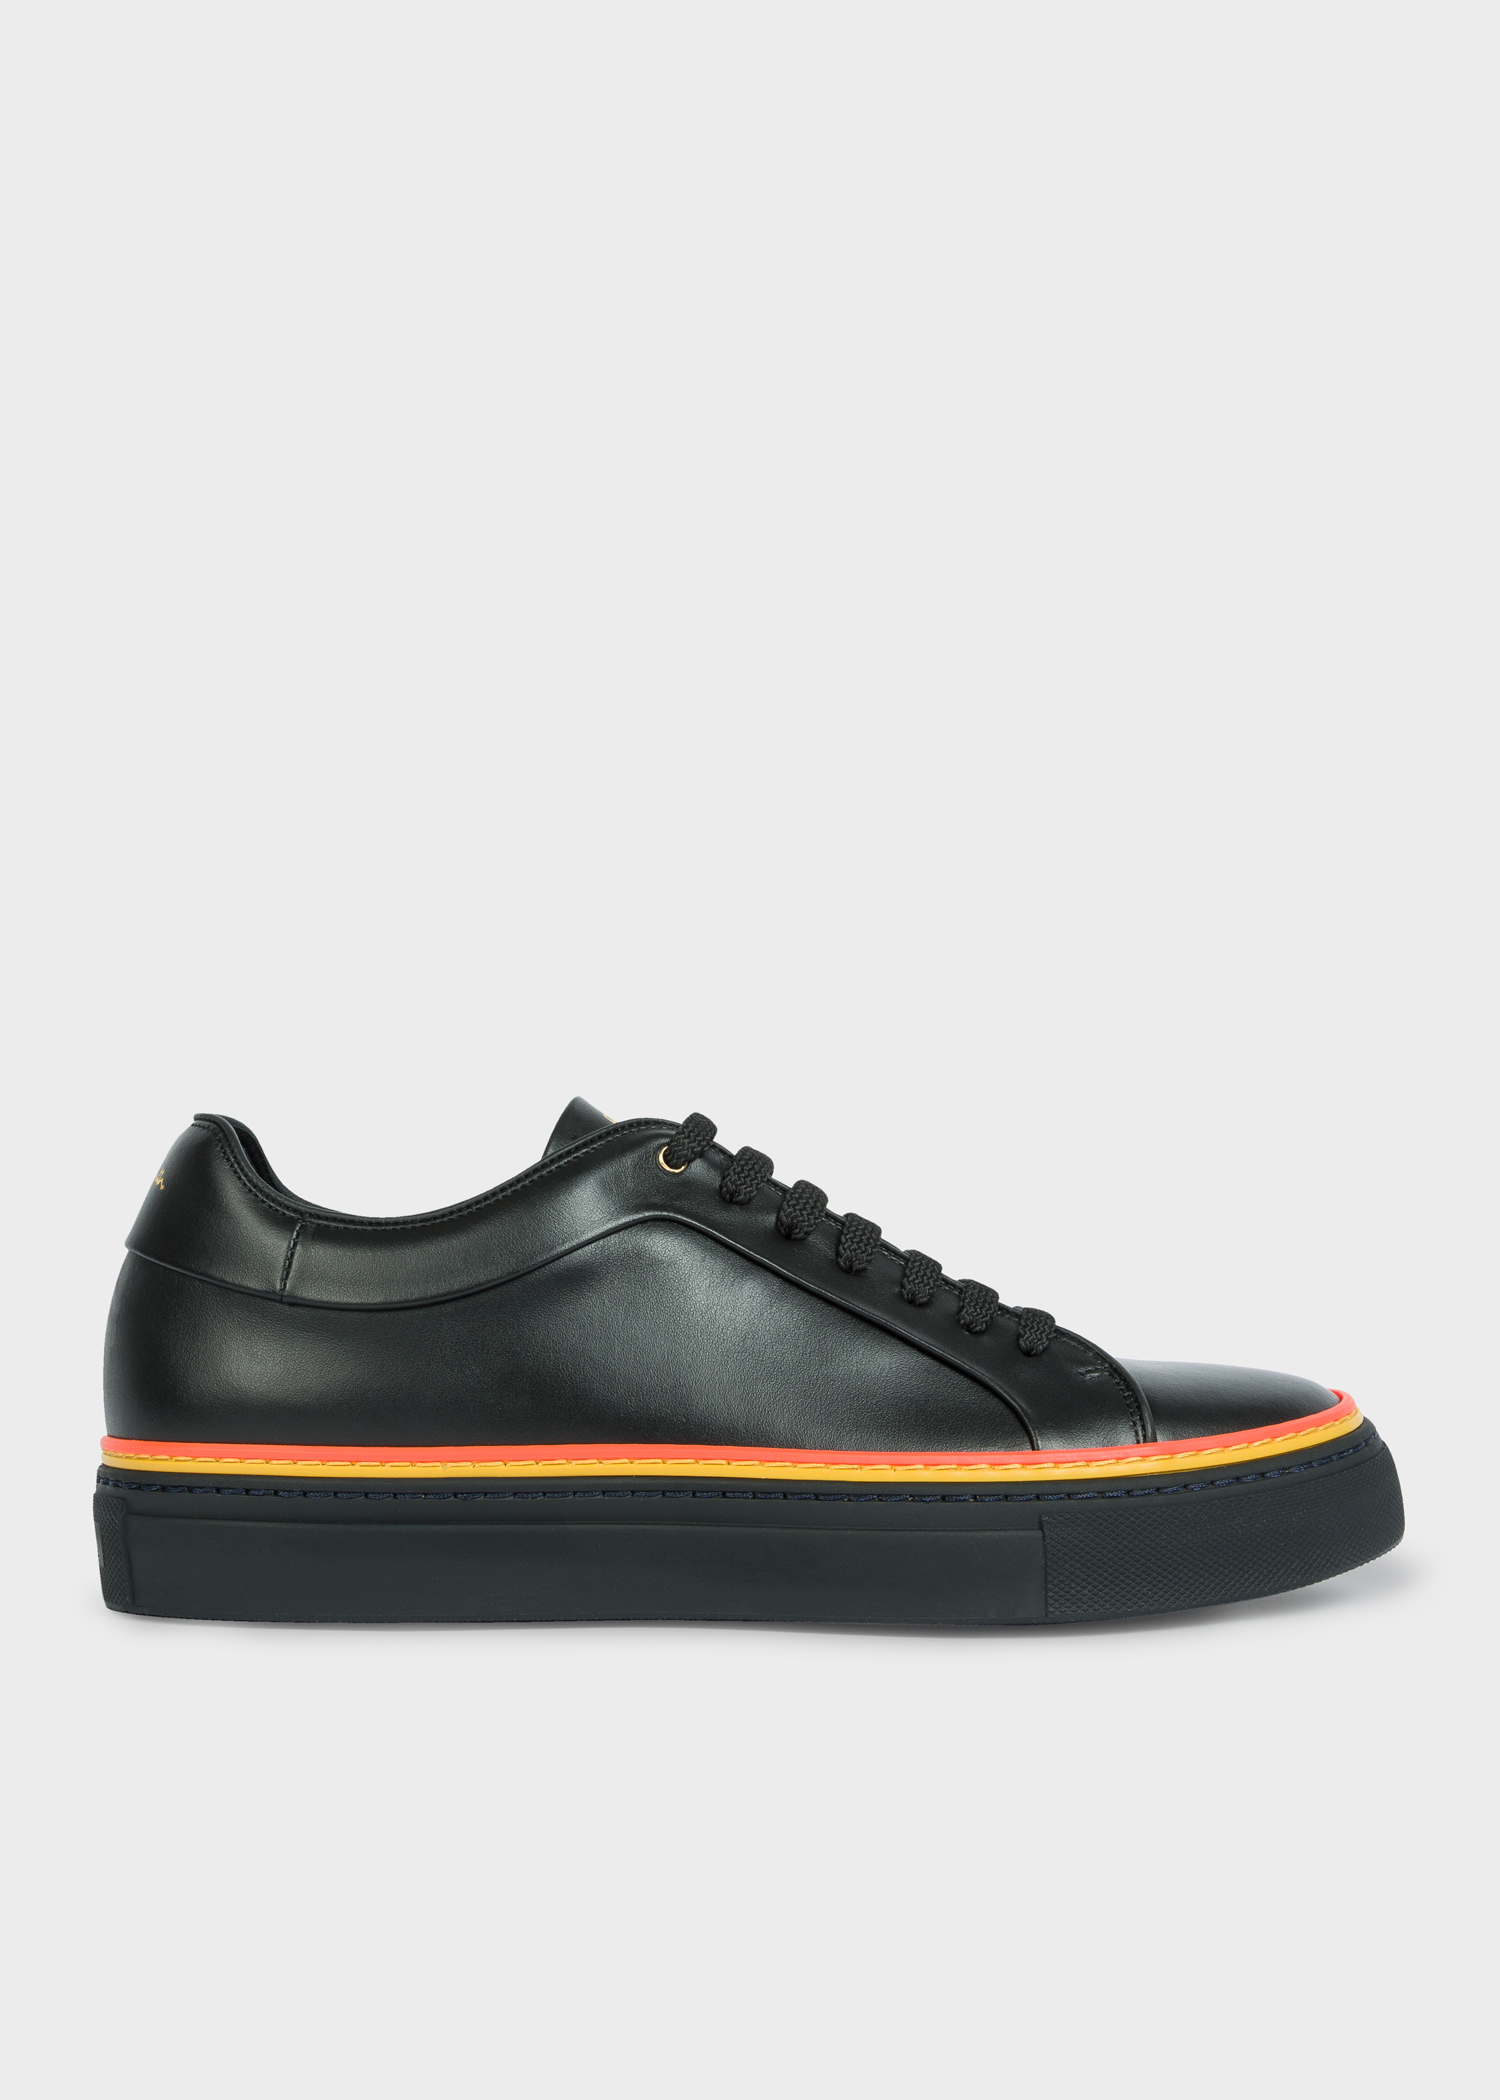 e8839bcc69f Side view - Men's Black Leather 'Basso' Trainers With Orange And Yellow Details  Paul